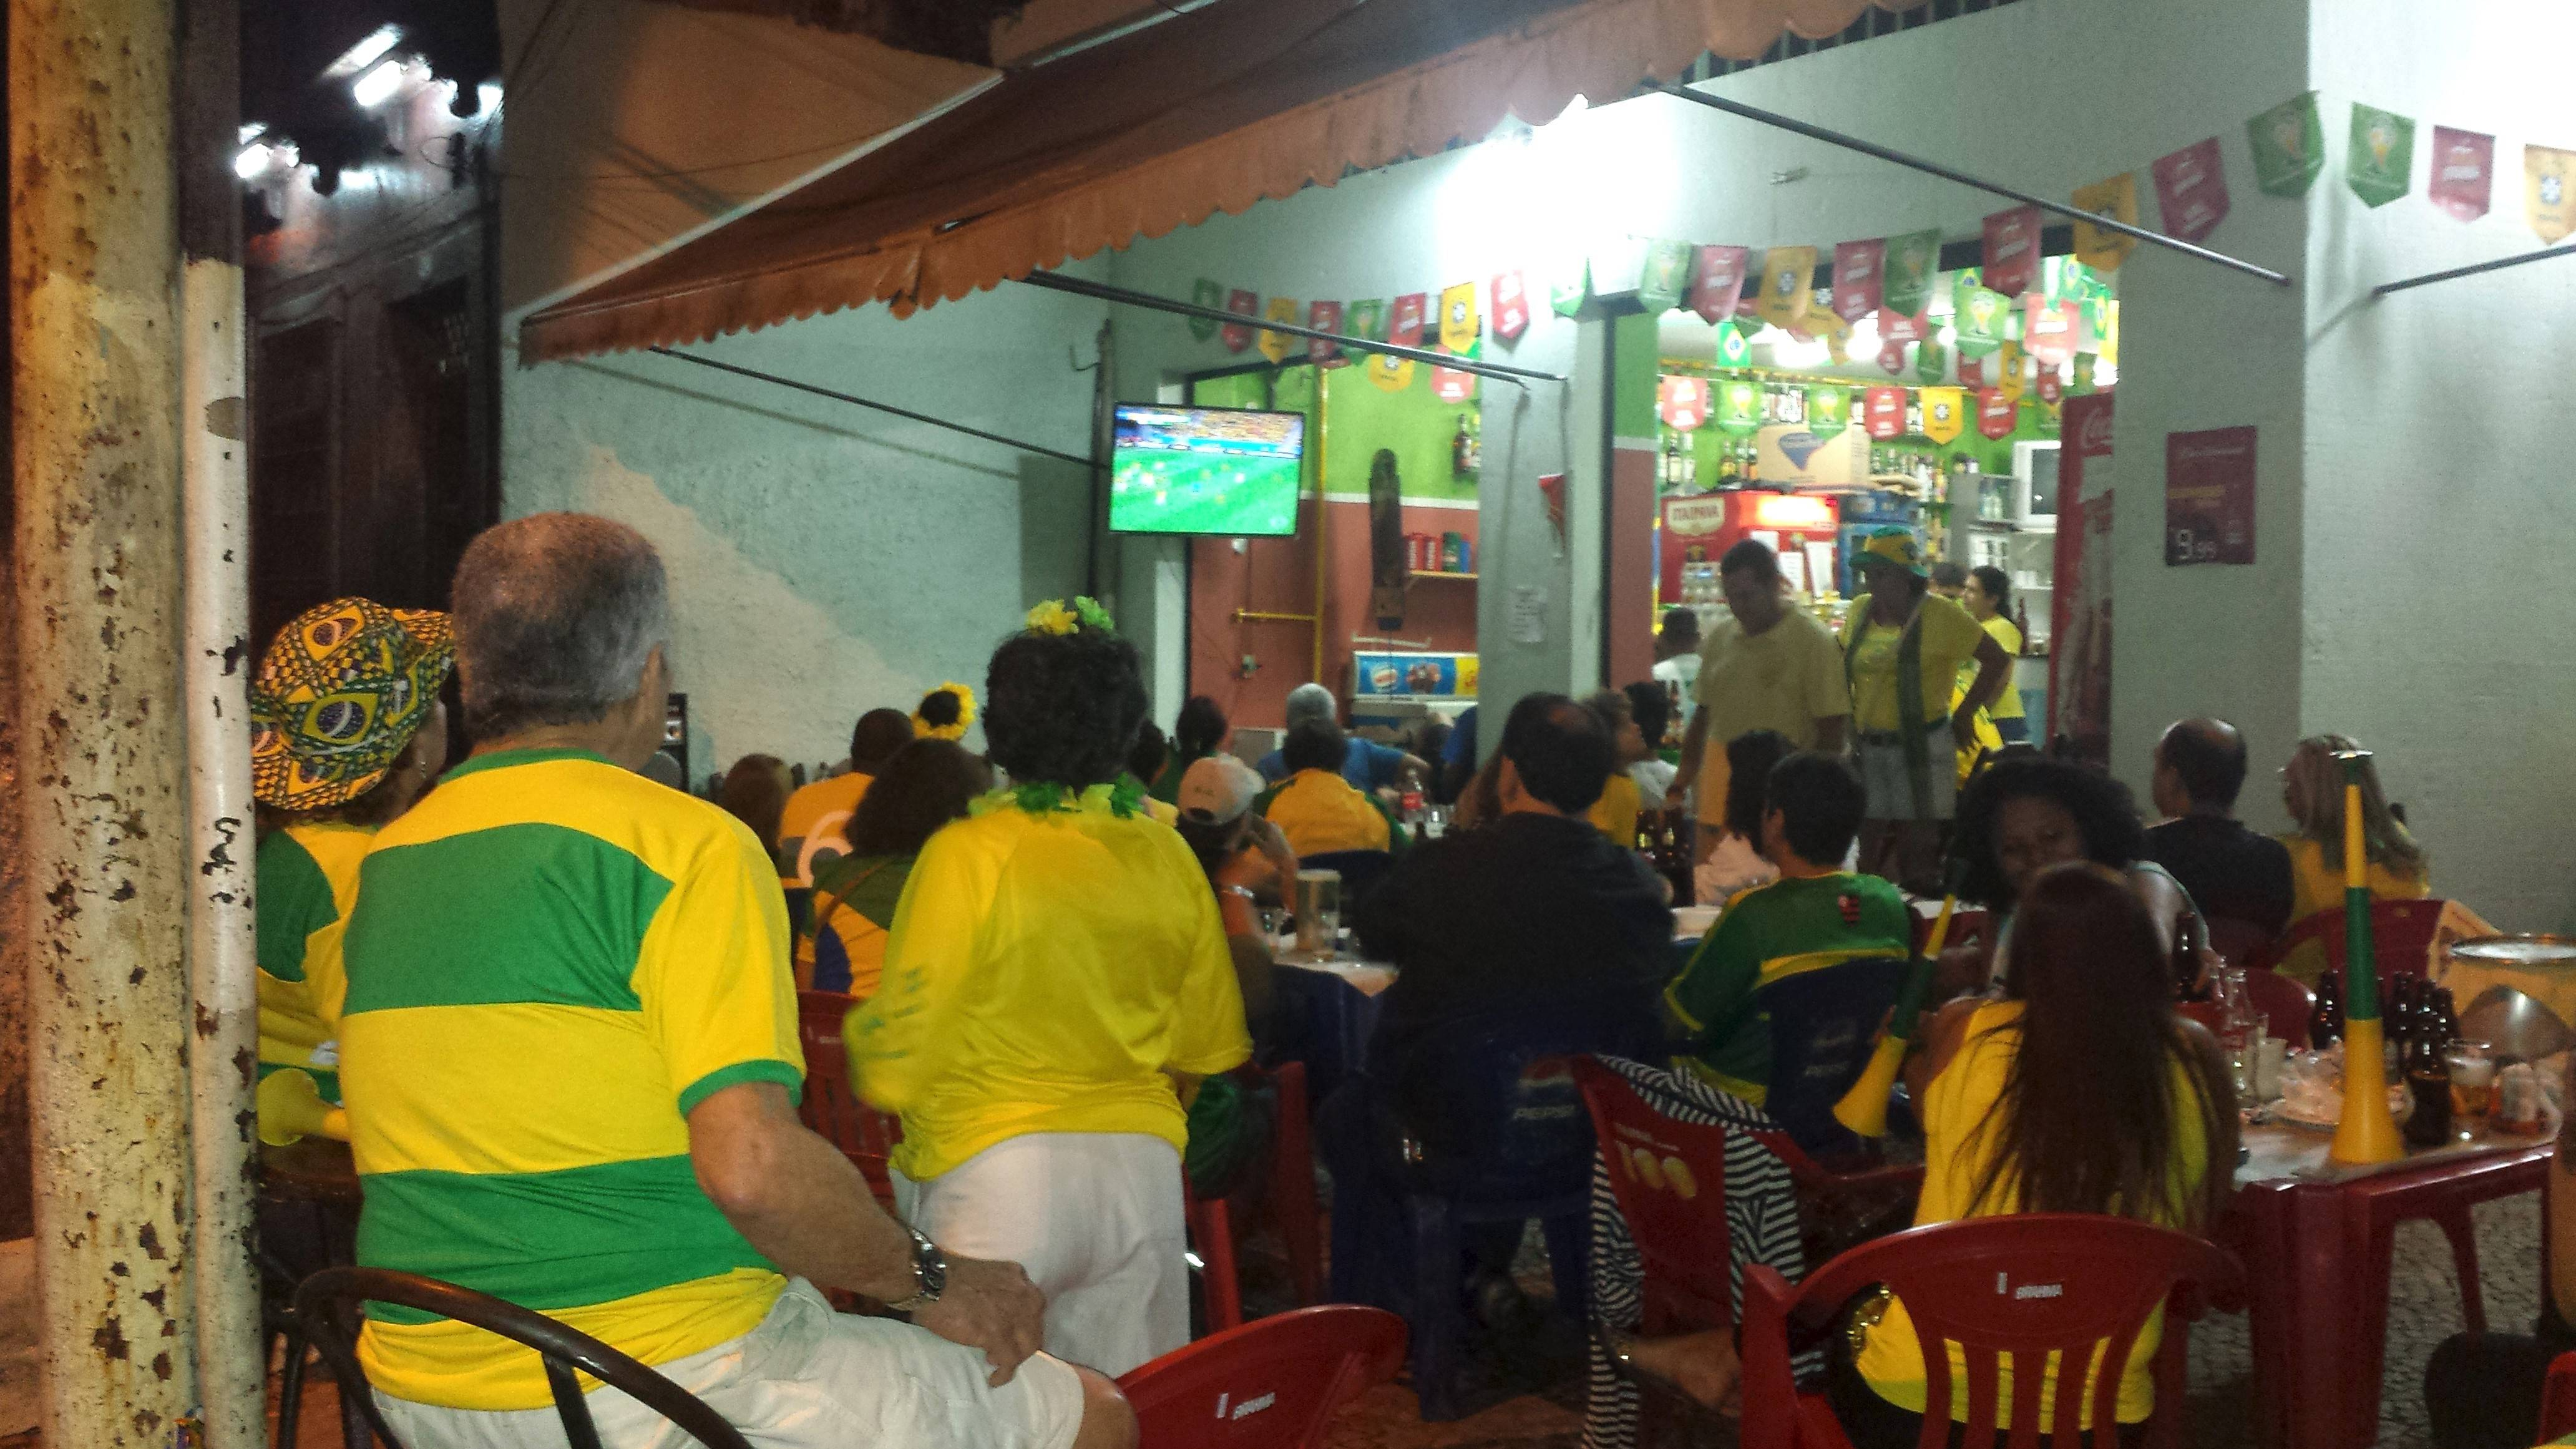 With Brazilian fans everywhere, this was the view as Mike Taylor caught some of the local flavor while watching a World Cup game from a local bar in Brazil.